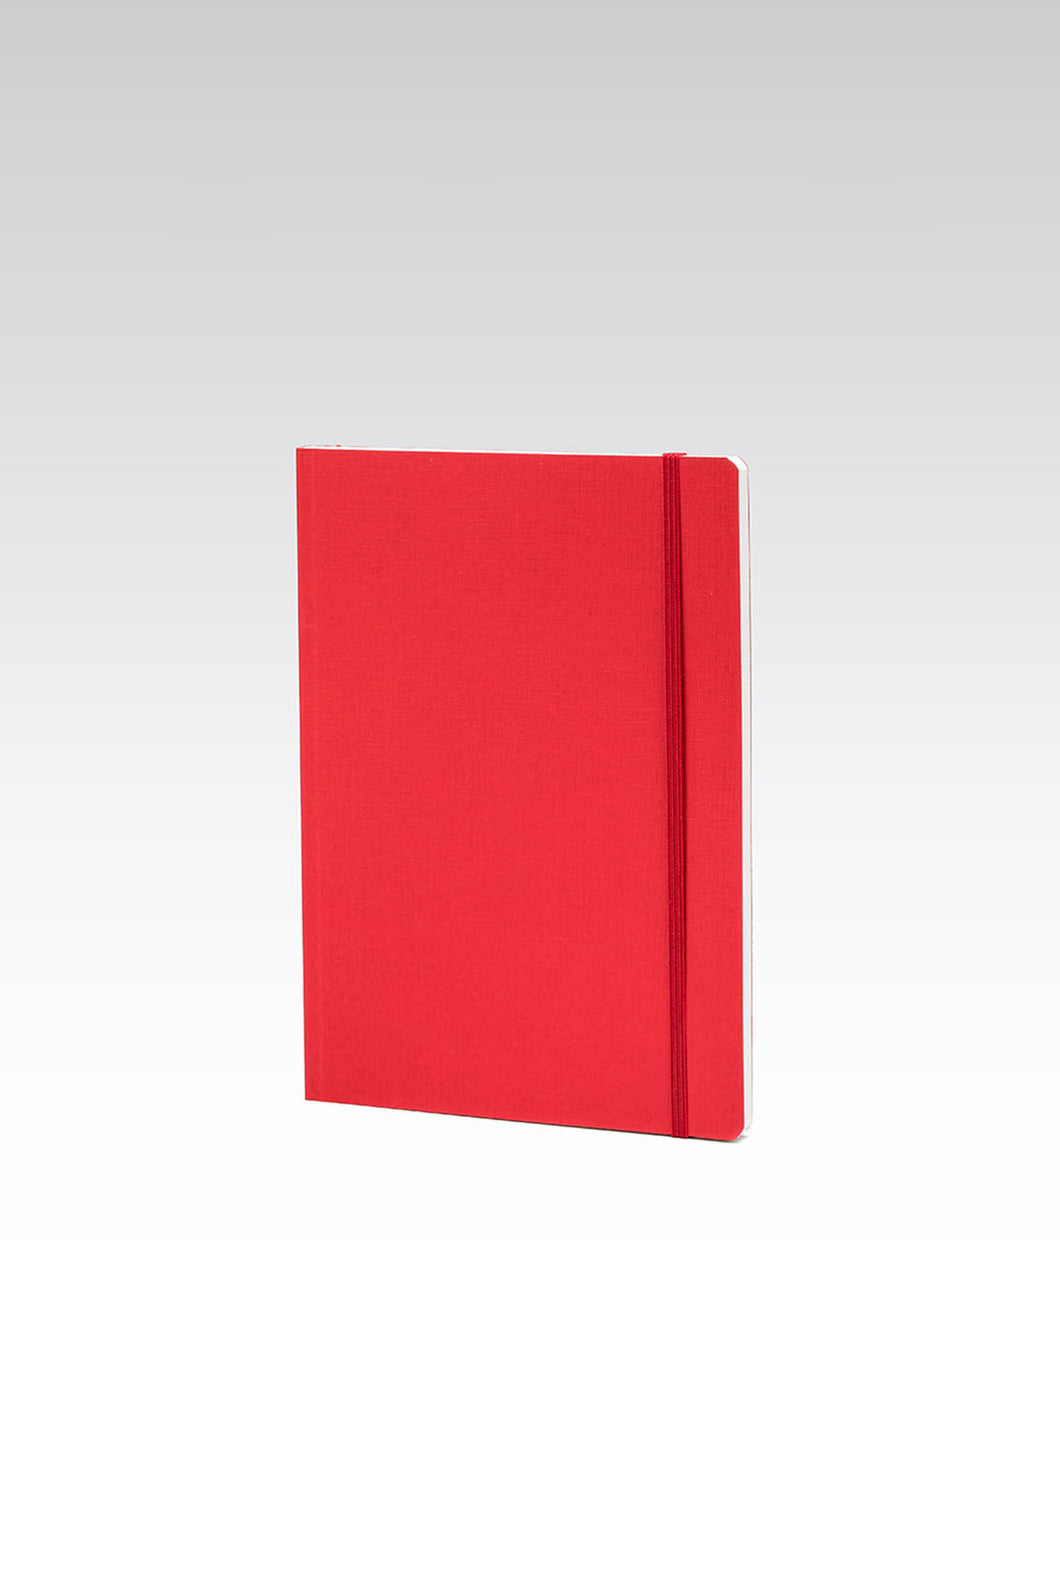 Fabriano Boutique - EcoQua Notebook with Elastic Band - Ruled - A5 (14.8x21cm) - Raspberry